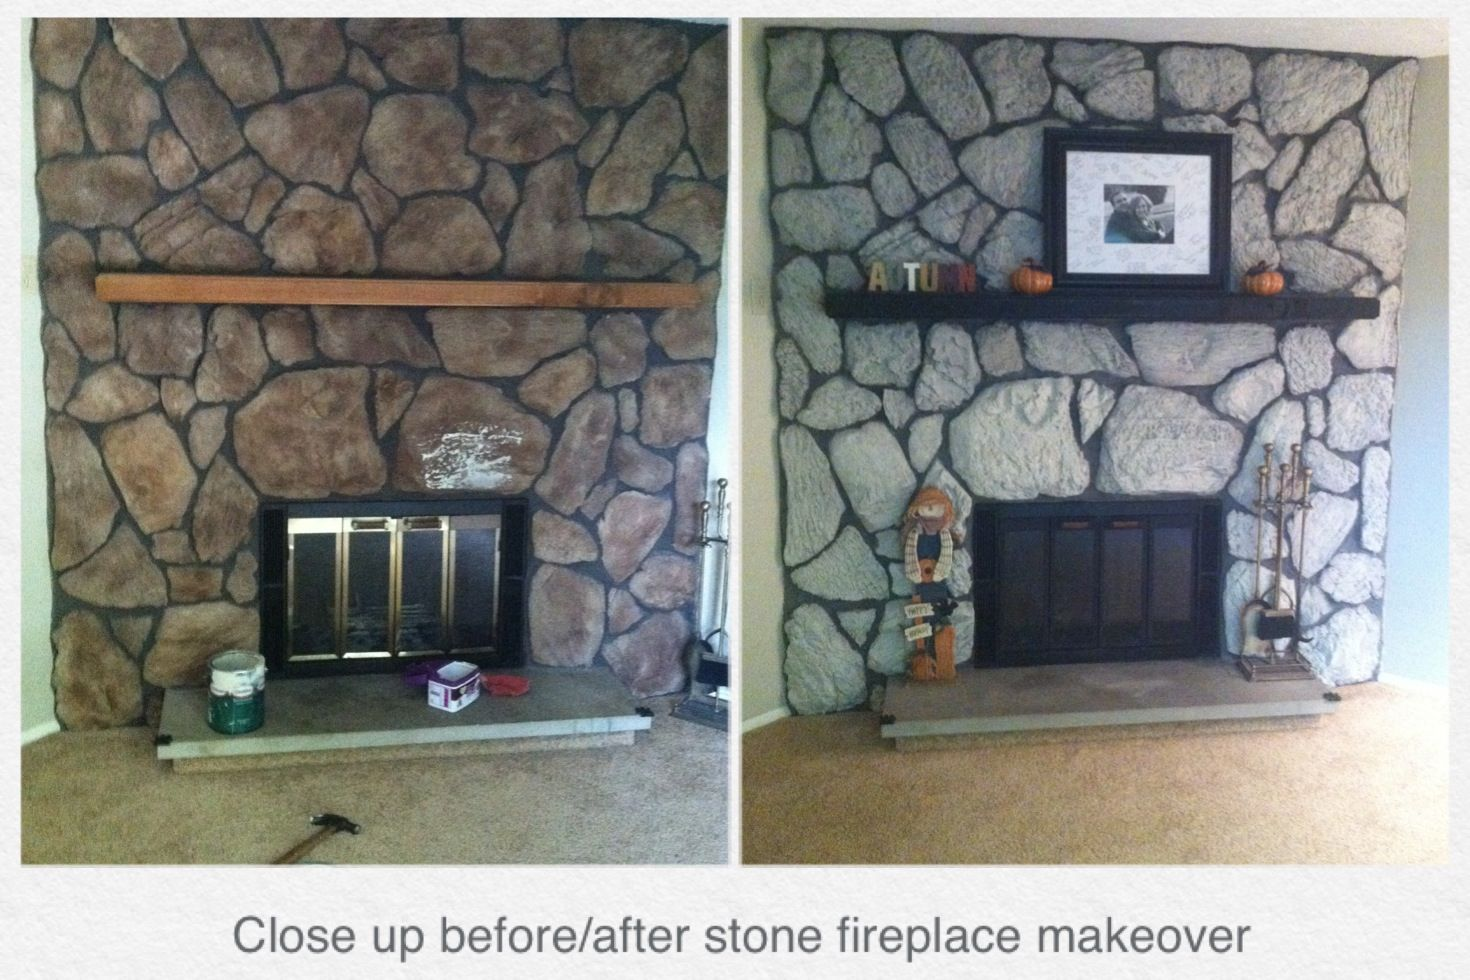 stone fireplace makeover watered down paint brushed and sponged on the stone brushed random. Black Bedroom Furniture Sets. Home Design Ideas